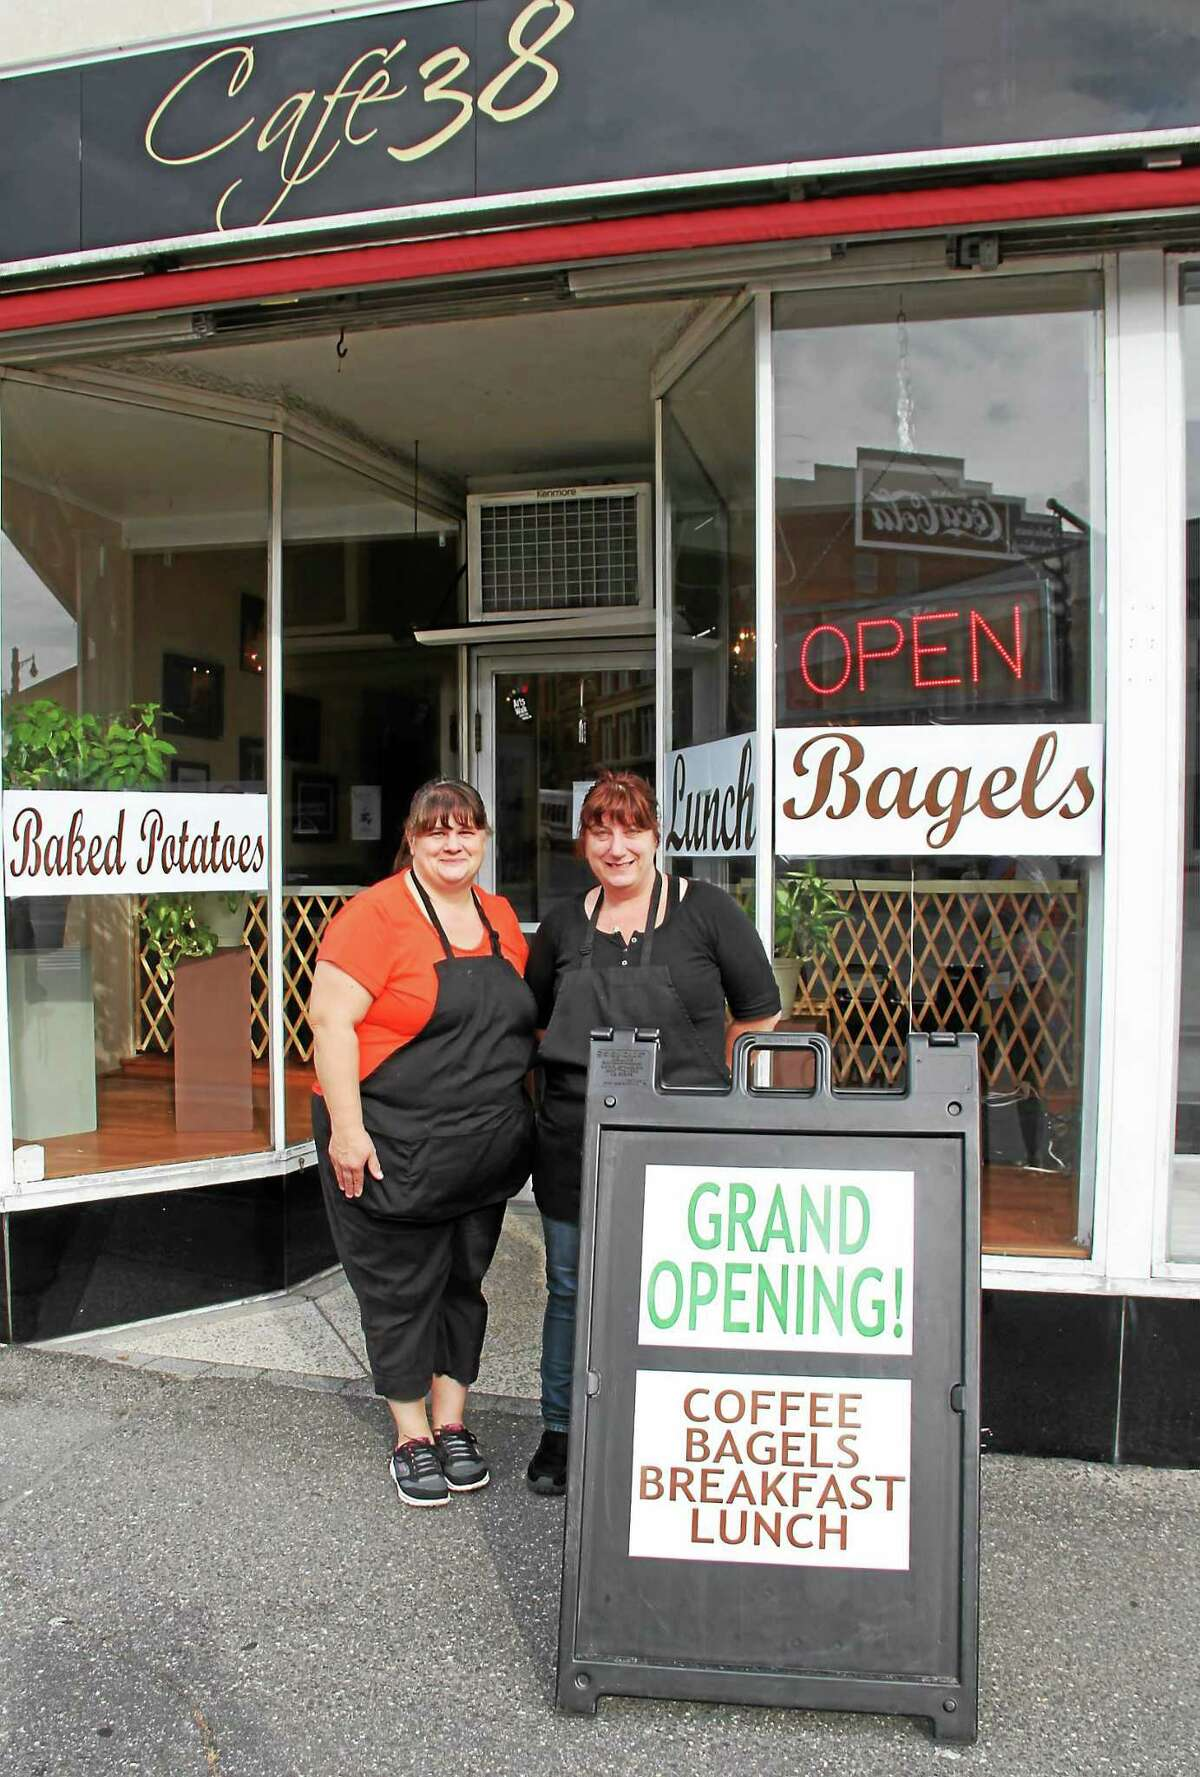 Cafe 38 owners Tina Pesillo, left, and Dawn Vincent outside their new Main Street eatery featuring breakfast and lunch.